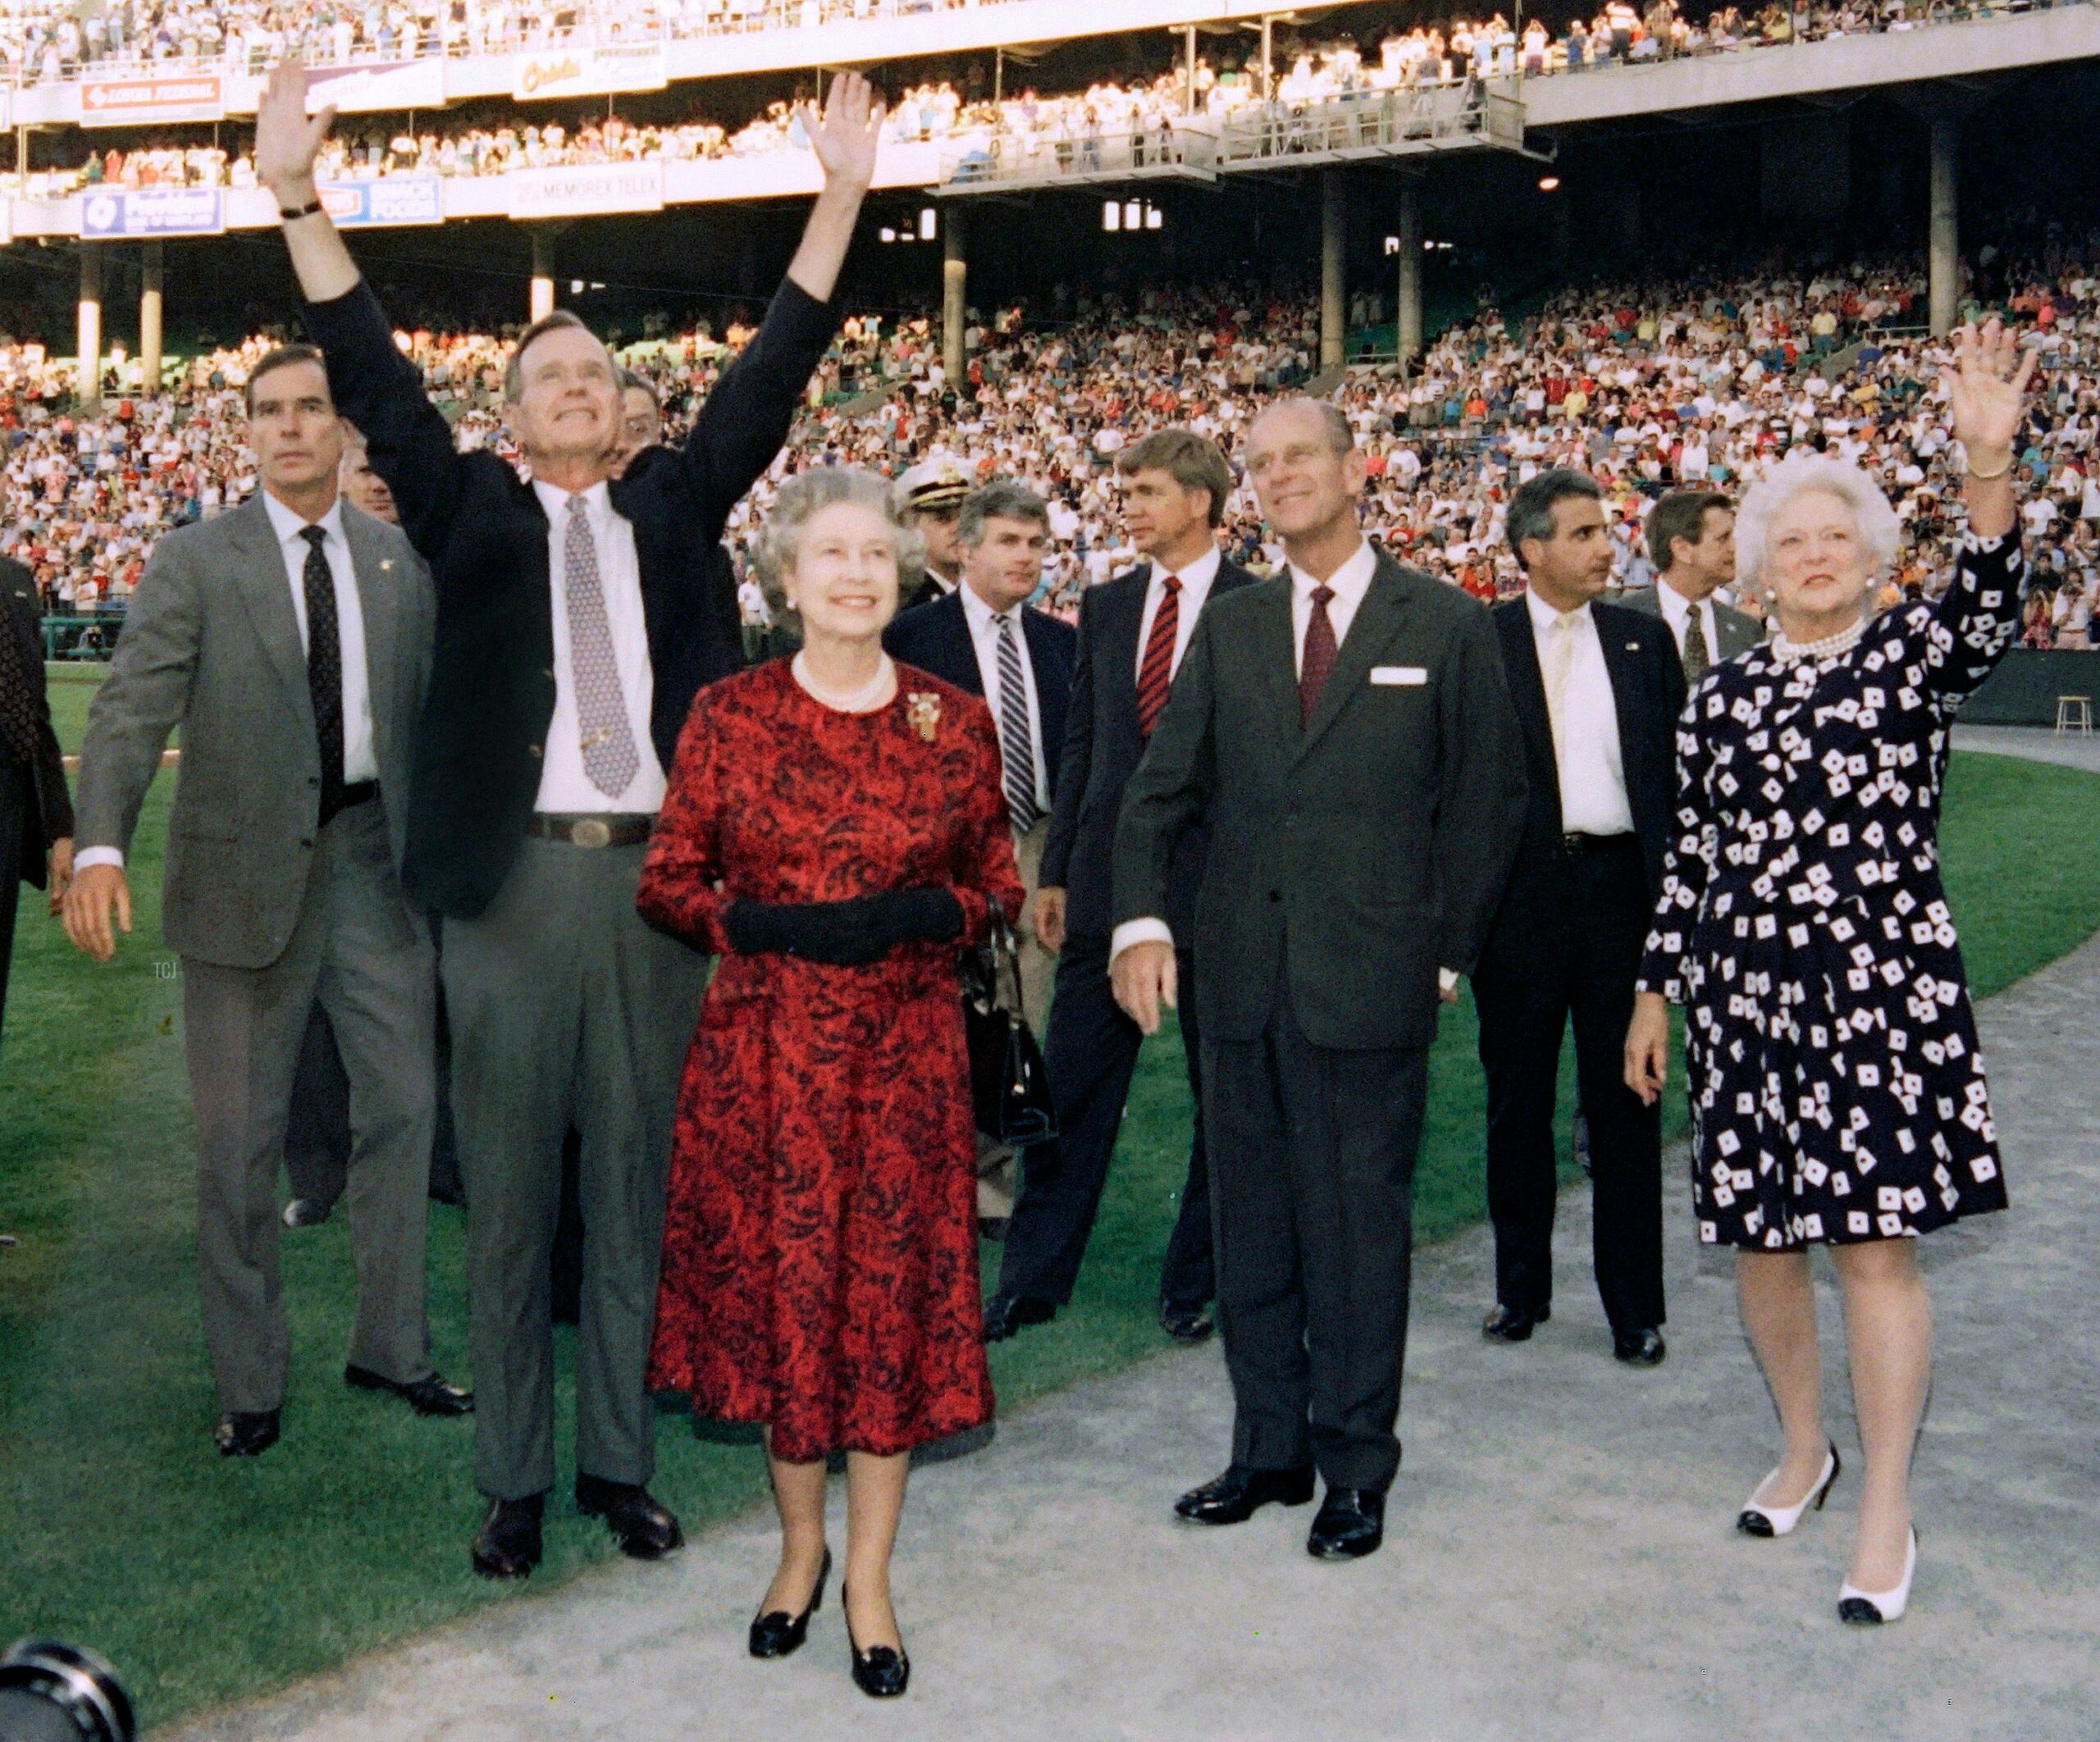 US President George Bush (C), Britain's Queen Elizabeth II (C), Prince Philip, Duke of Edinburgh (4th R) and Barbara Bush (3rd R) wave to the crowd before the start of the Orioles vs. the Oakland Athletics baseball game at the Memorial Stadium in Baltimore on May 15, 1991